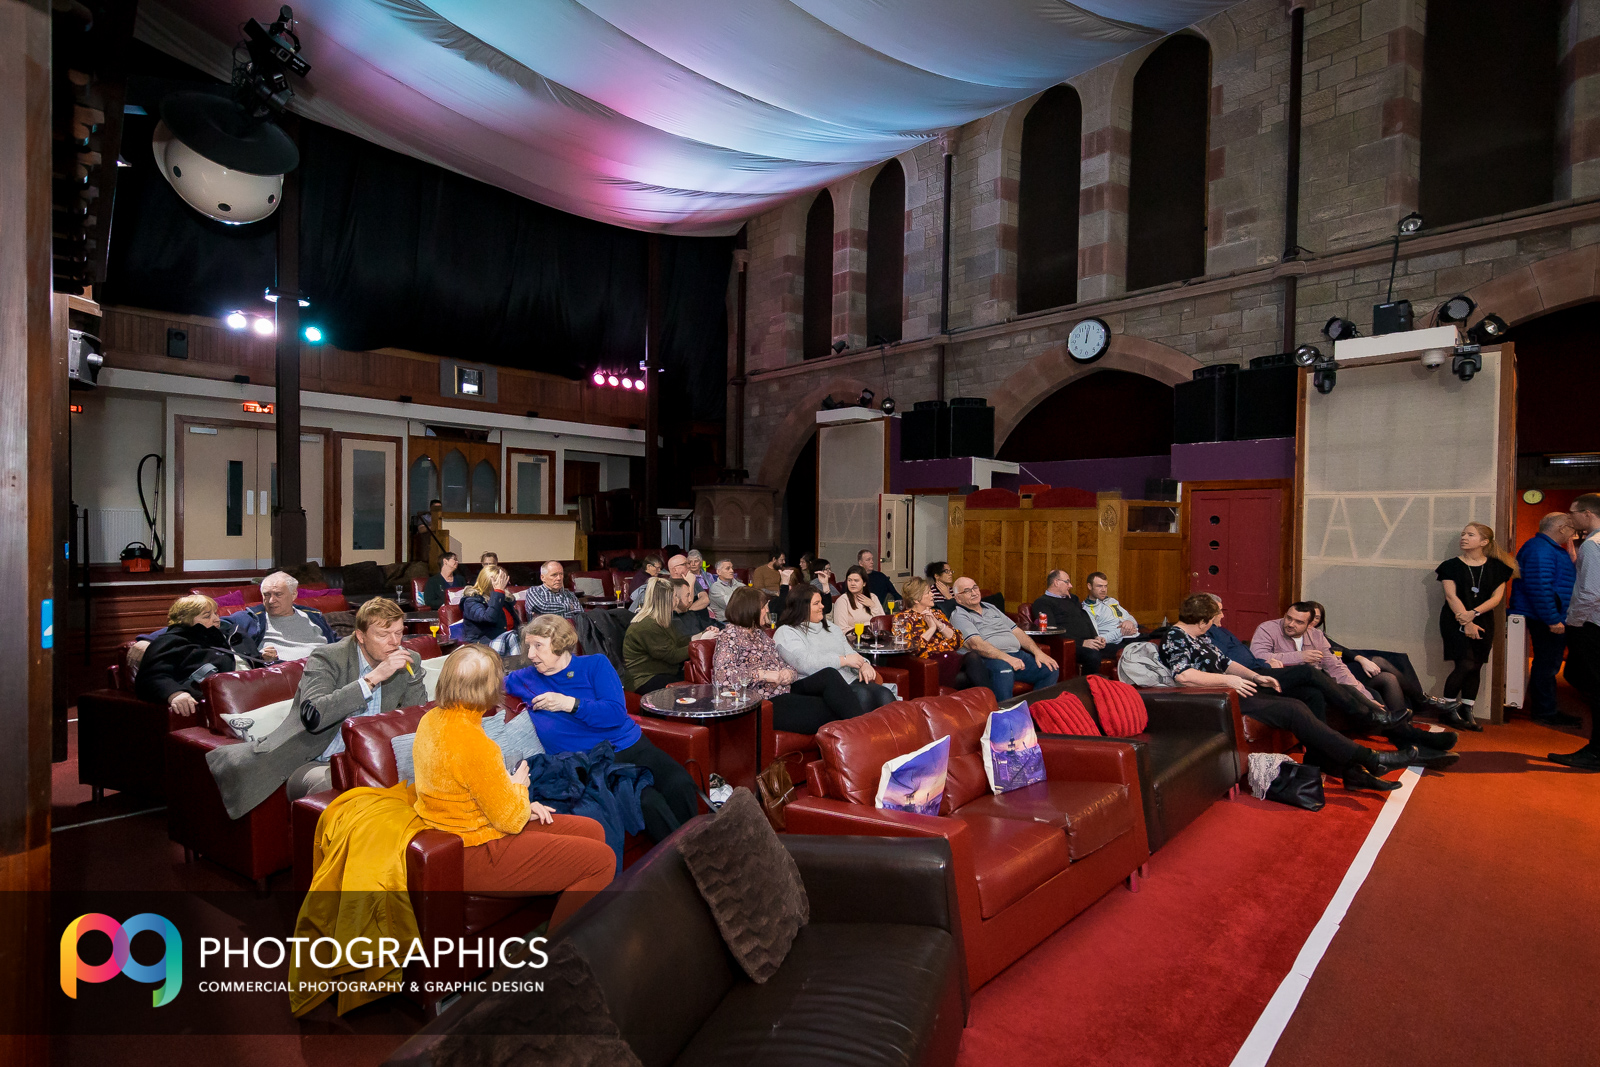 event-PR-photography-edinburgh-glasgow-scotland-4.jpg